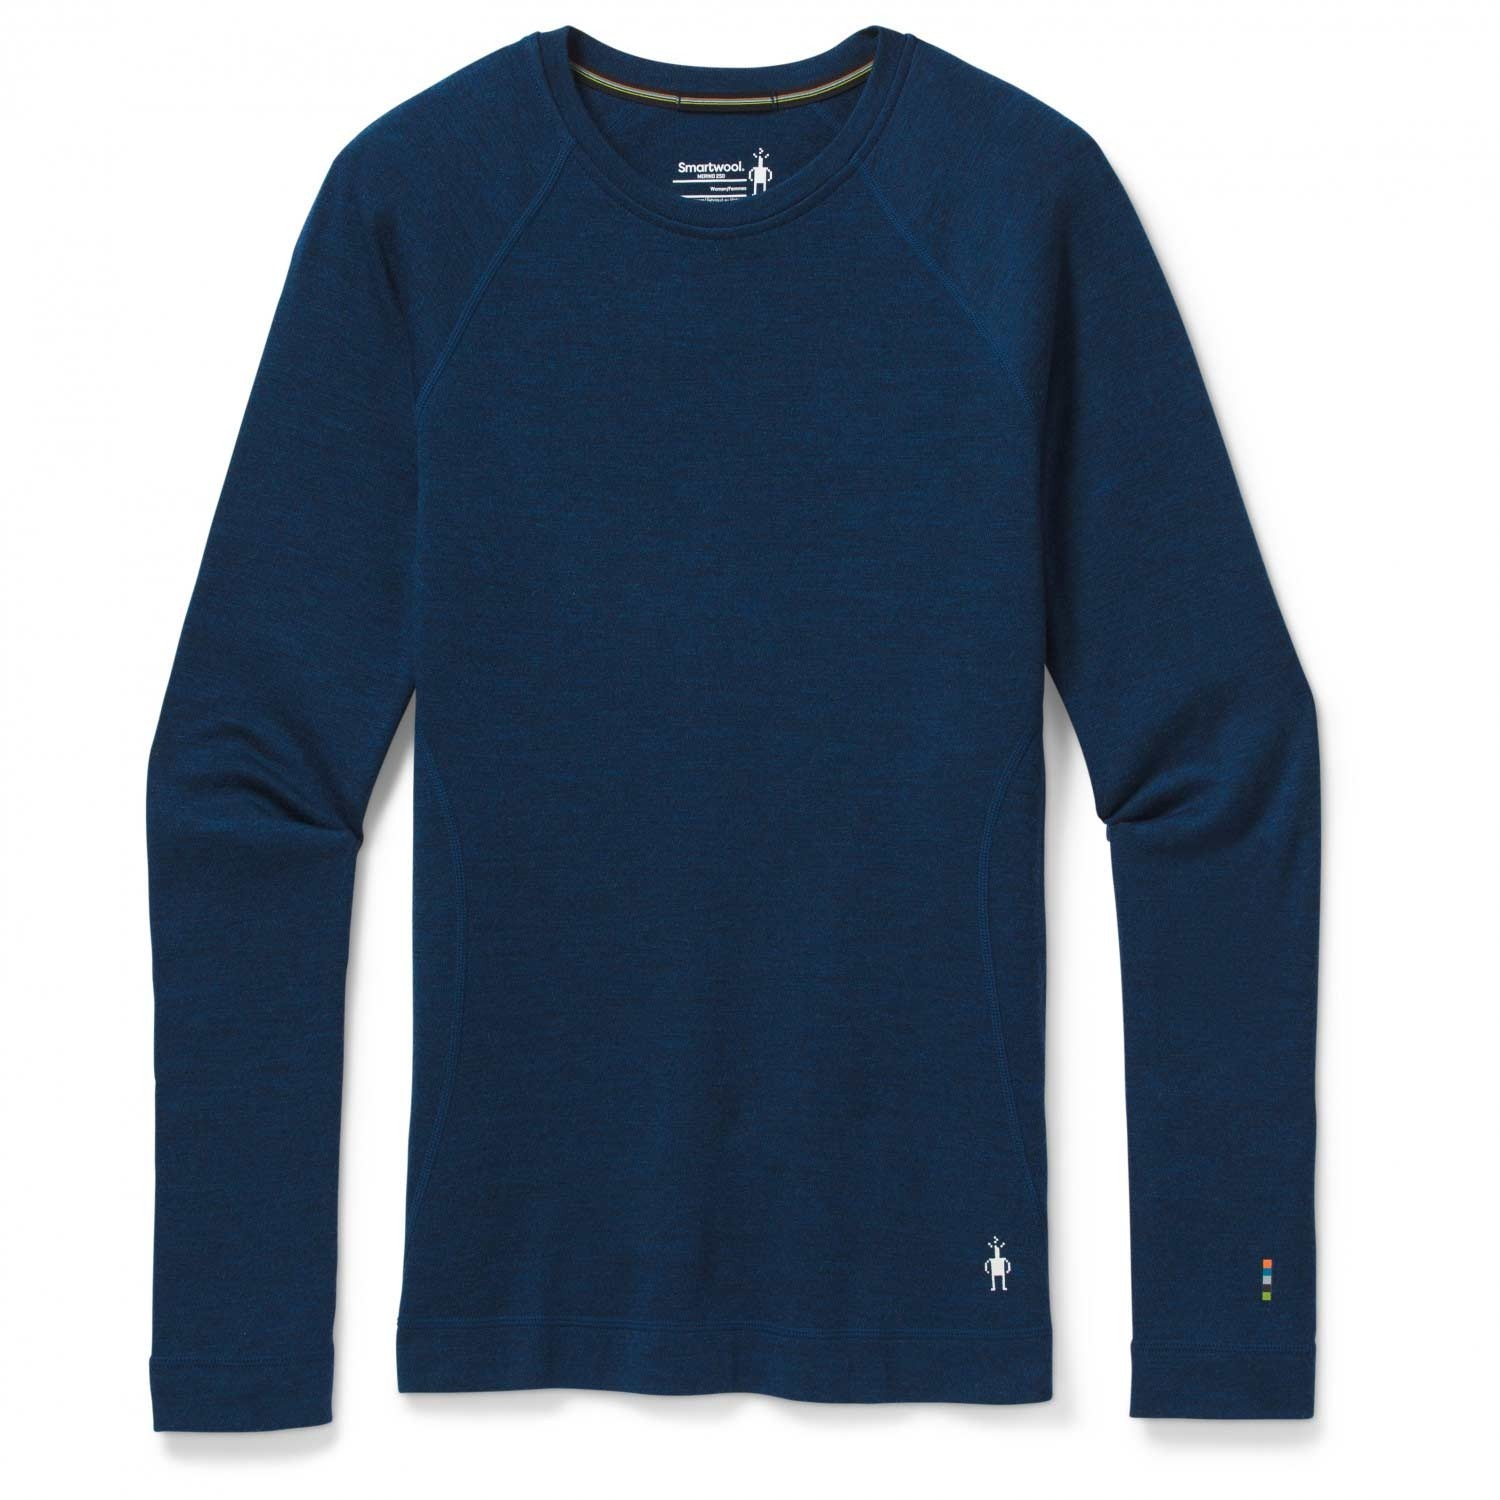 Smartwool Merino 250 Baselayer Crew - Women's - Alpine Blue Heather